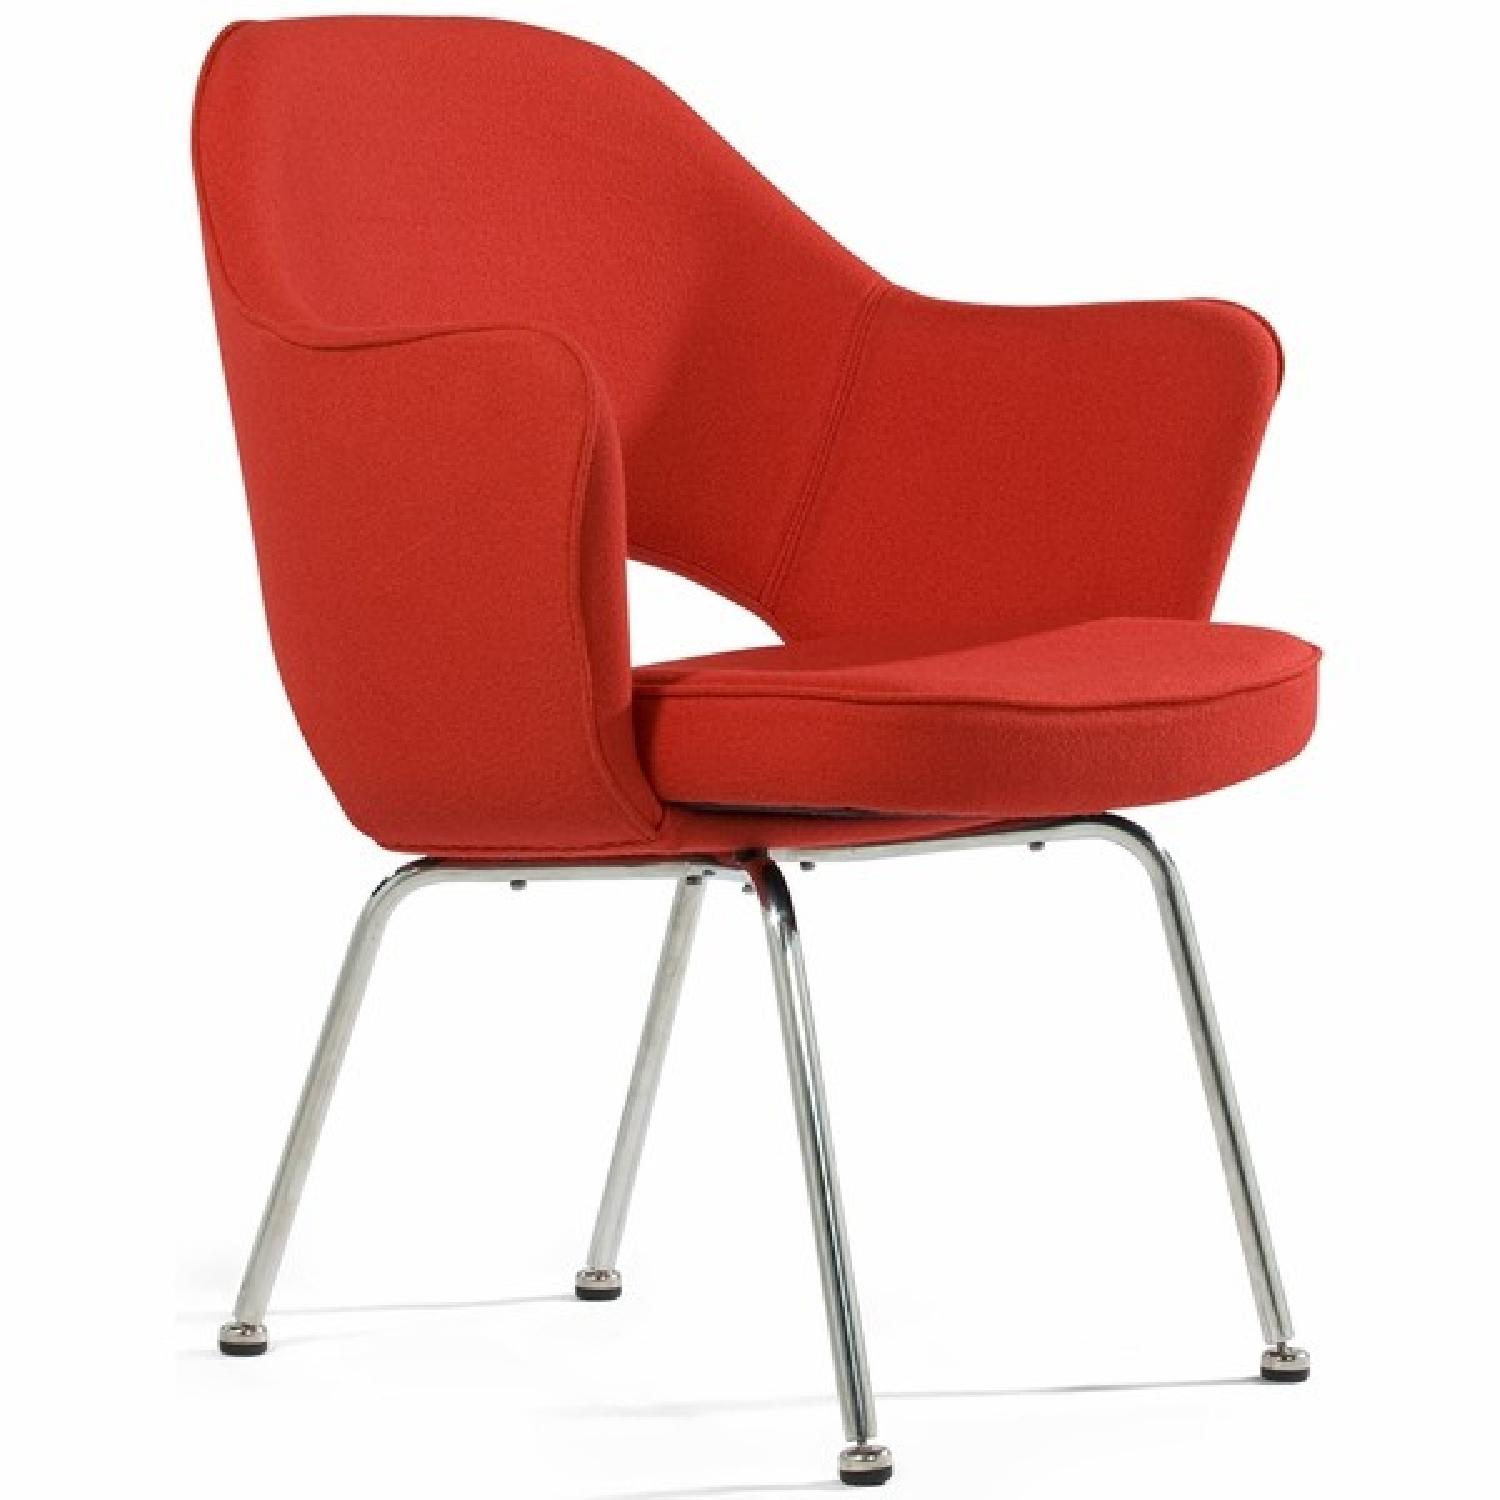 Knoll Saarinen Executive Chair in Red/Burnt Orange